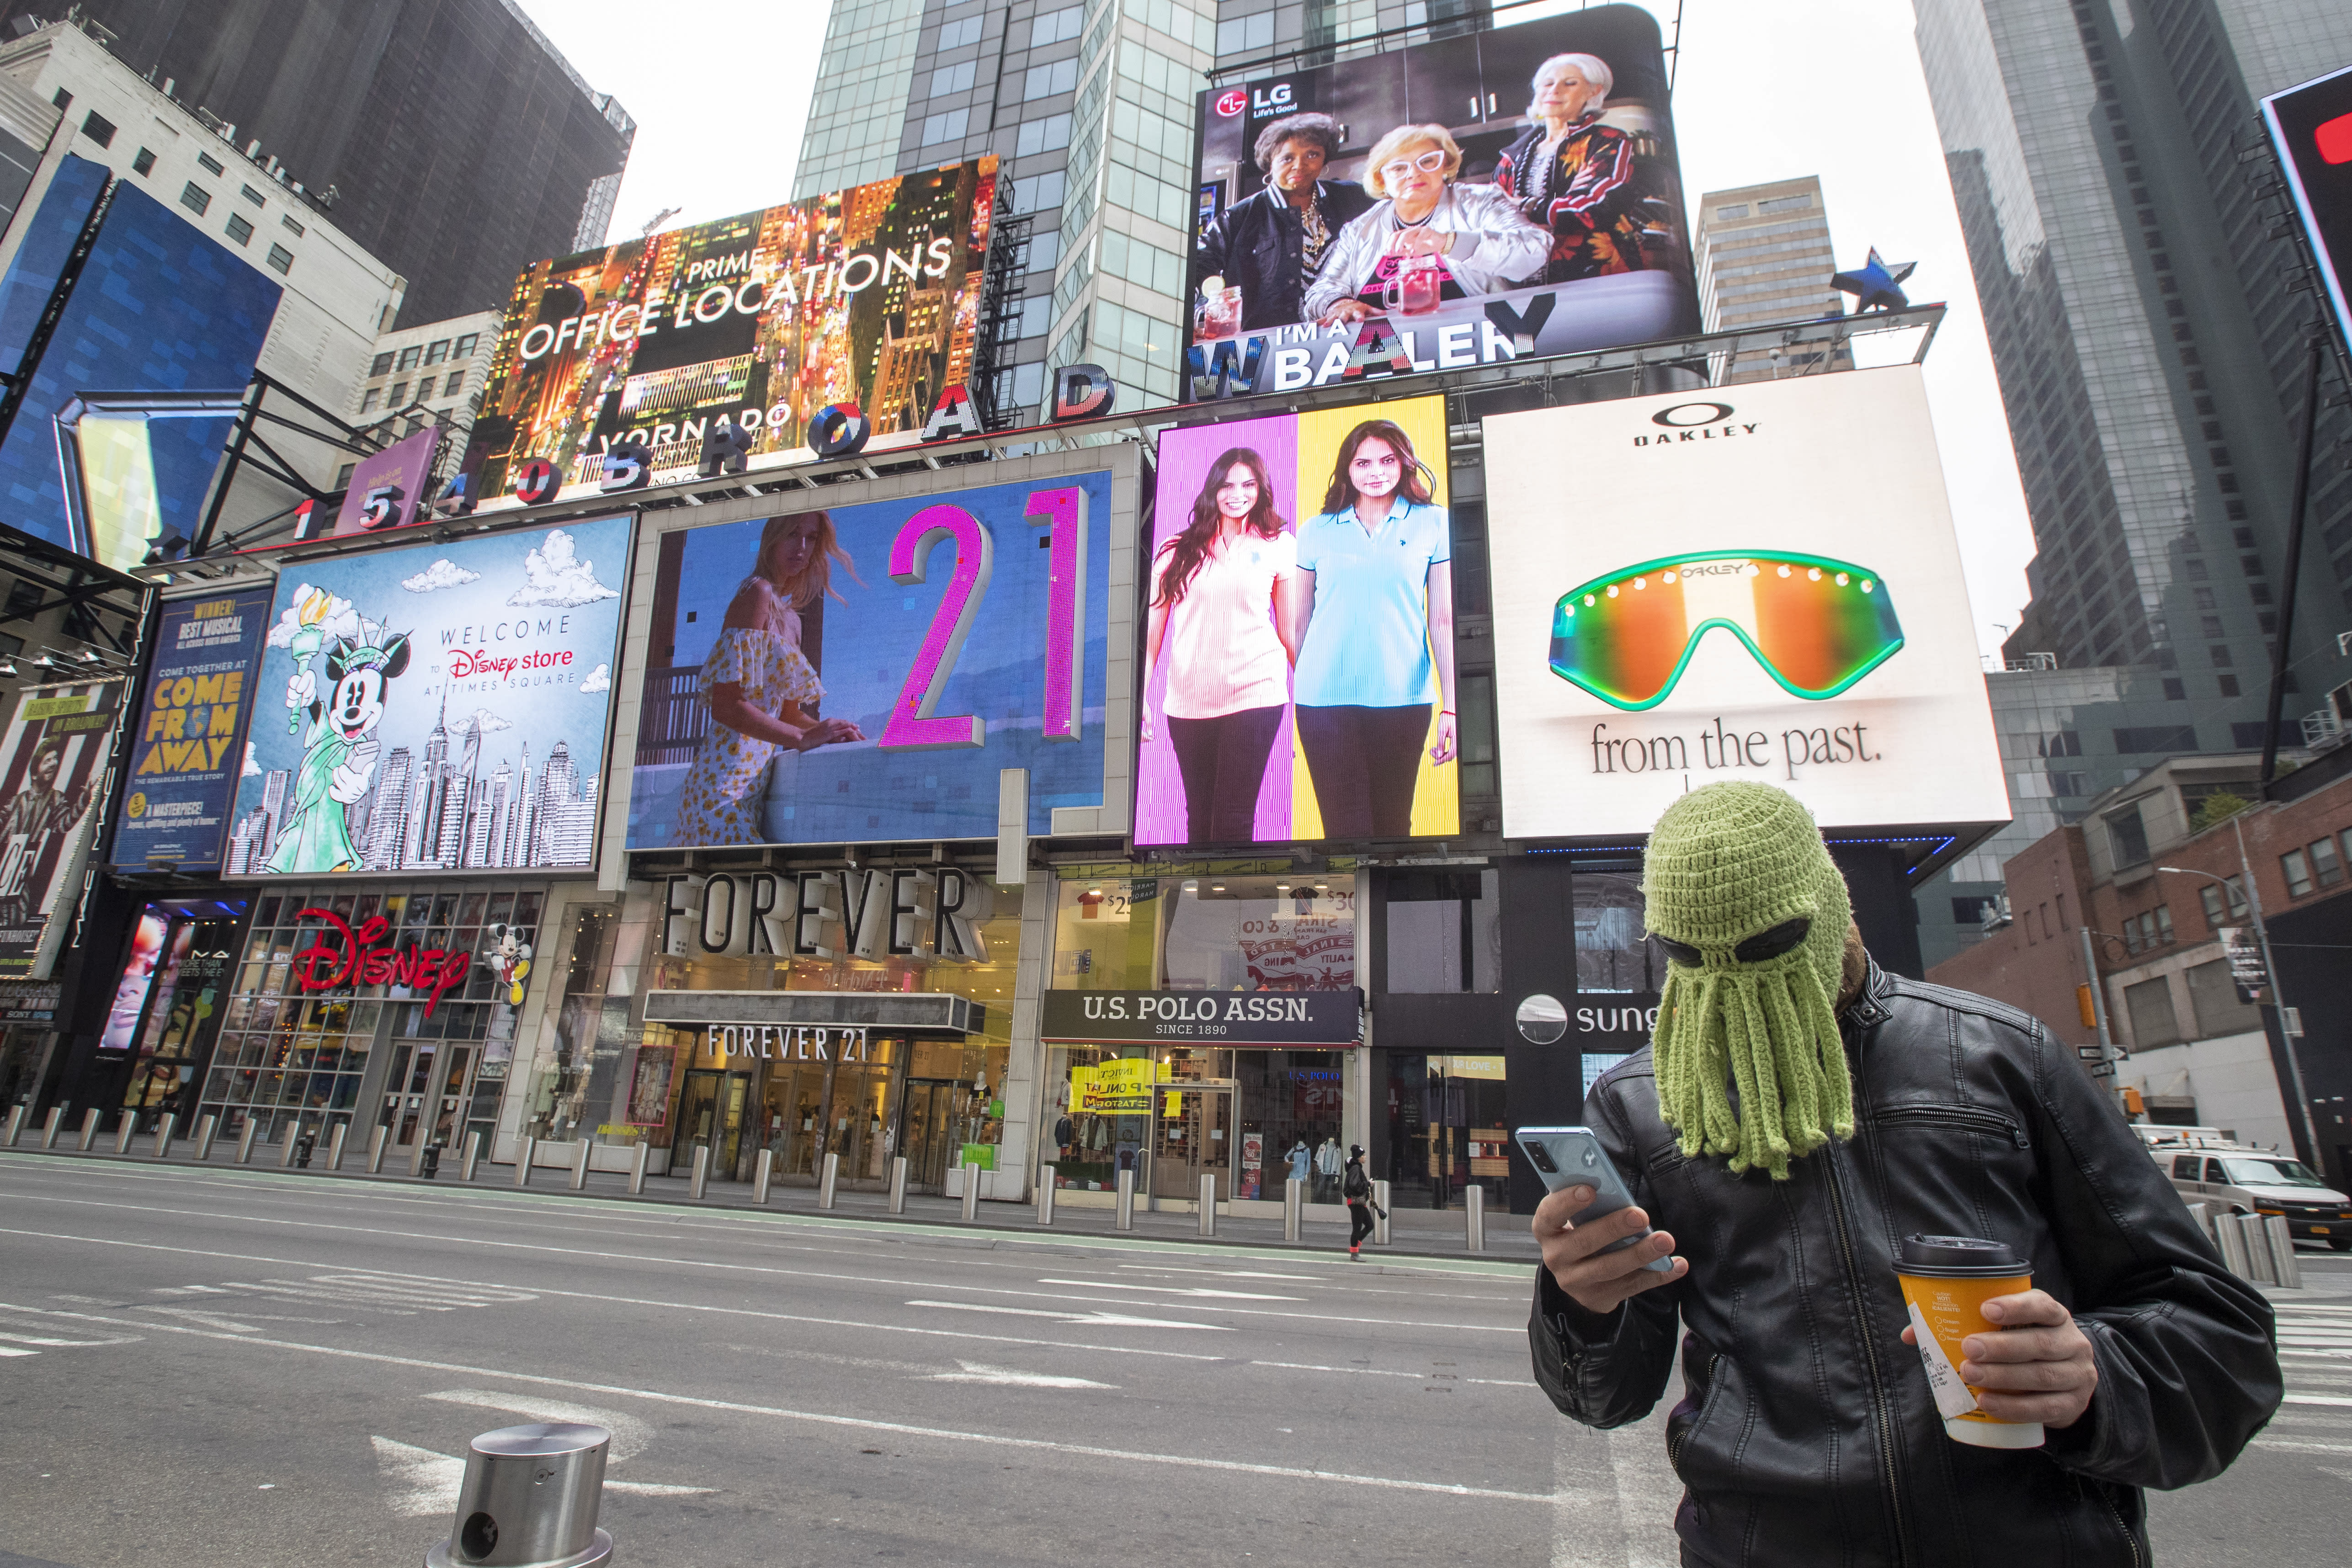 Jon Makay, of Harlem, wears an octopus hat to fend off coronavirus, Wednesday, March 25, 2020, in New York's Times Square. The number of people hospitalized with COVID-19 in New York climbed to 3,800, with close to 900 in intensive care, with the peak of the outbreak weeks away, Gov. Andrew Cuomo said Wednesday. The new coronavirus causes mild or moderate symptoms for most people, but for some, especially older adults and people with existing health problems, it can cause more severe illness or death. (AP Photo/Mary Altaffer)